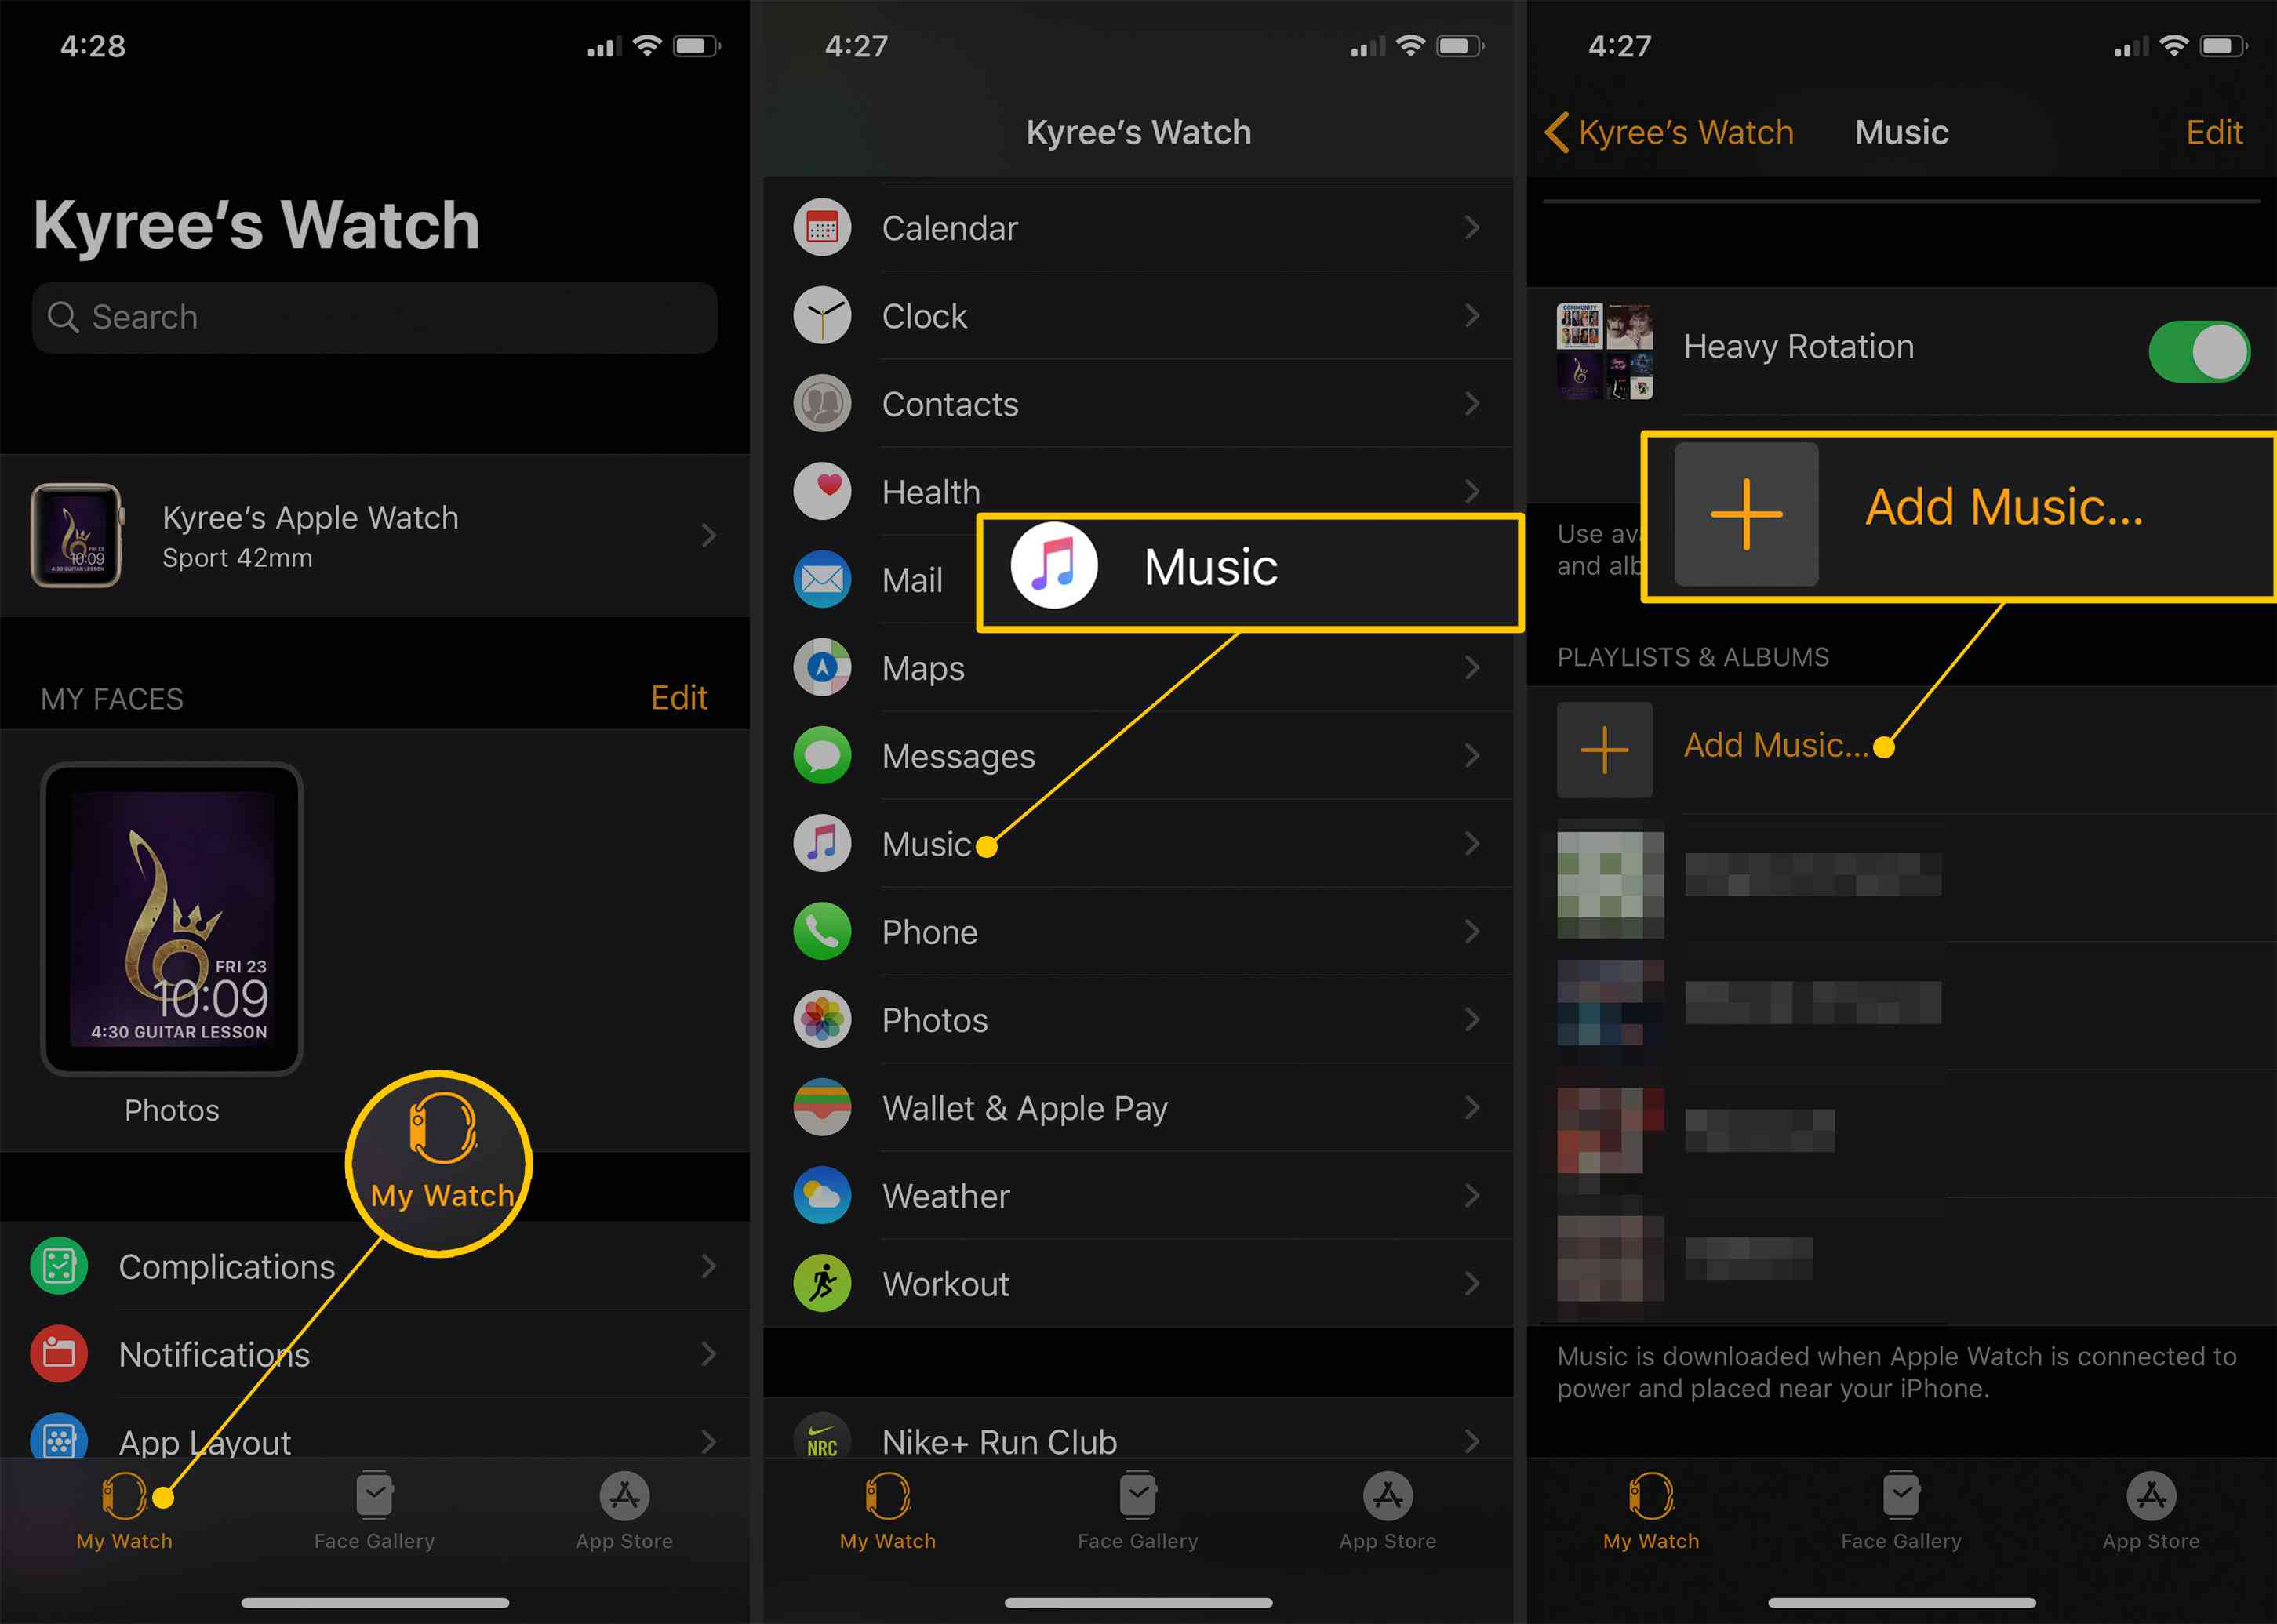 Add Music to Apple Watch from iPhone